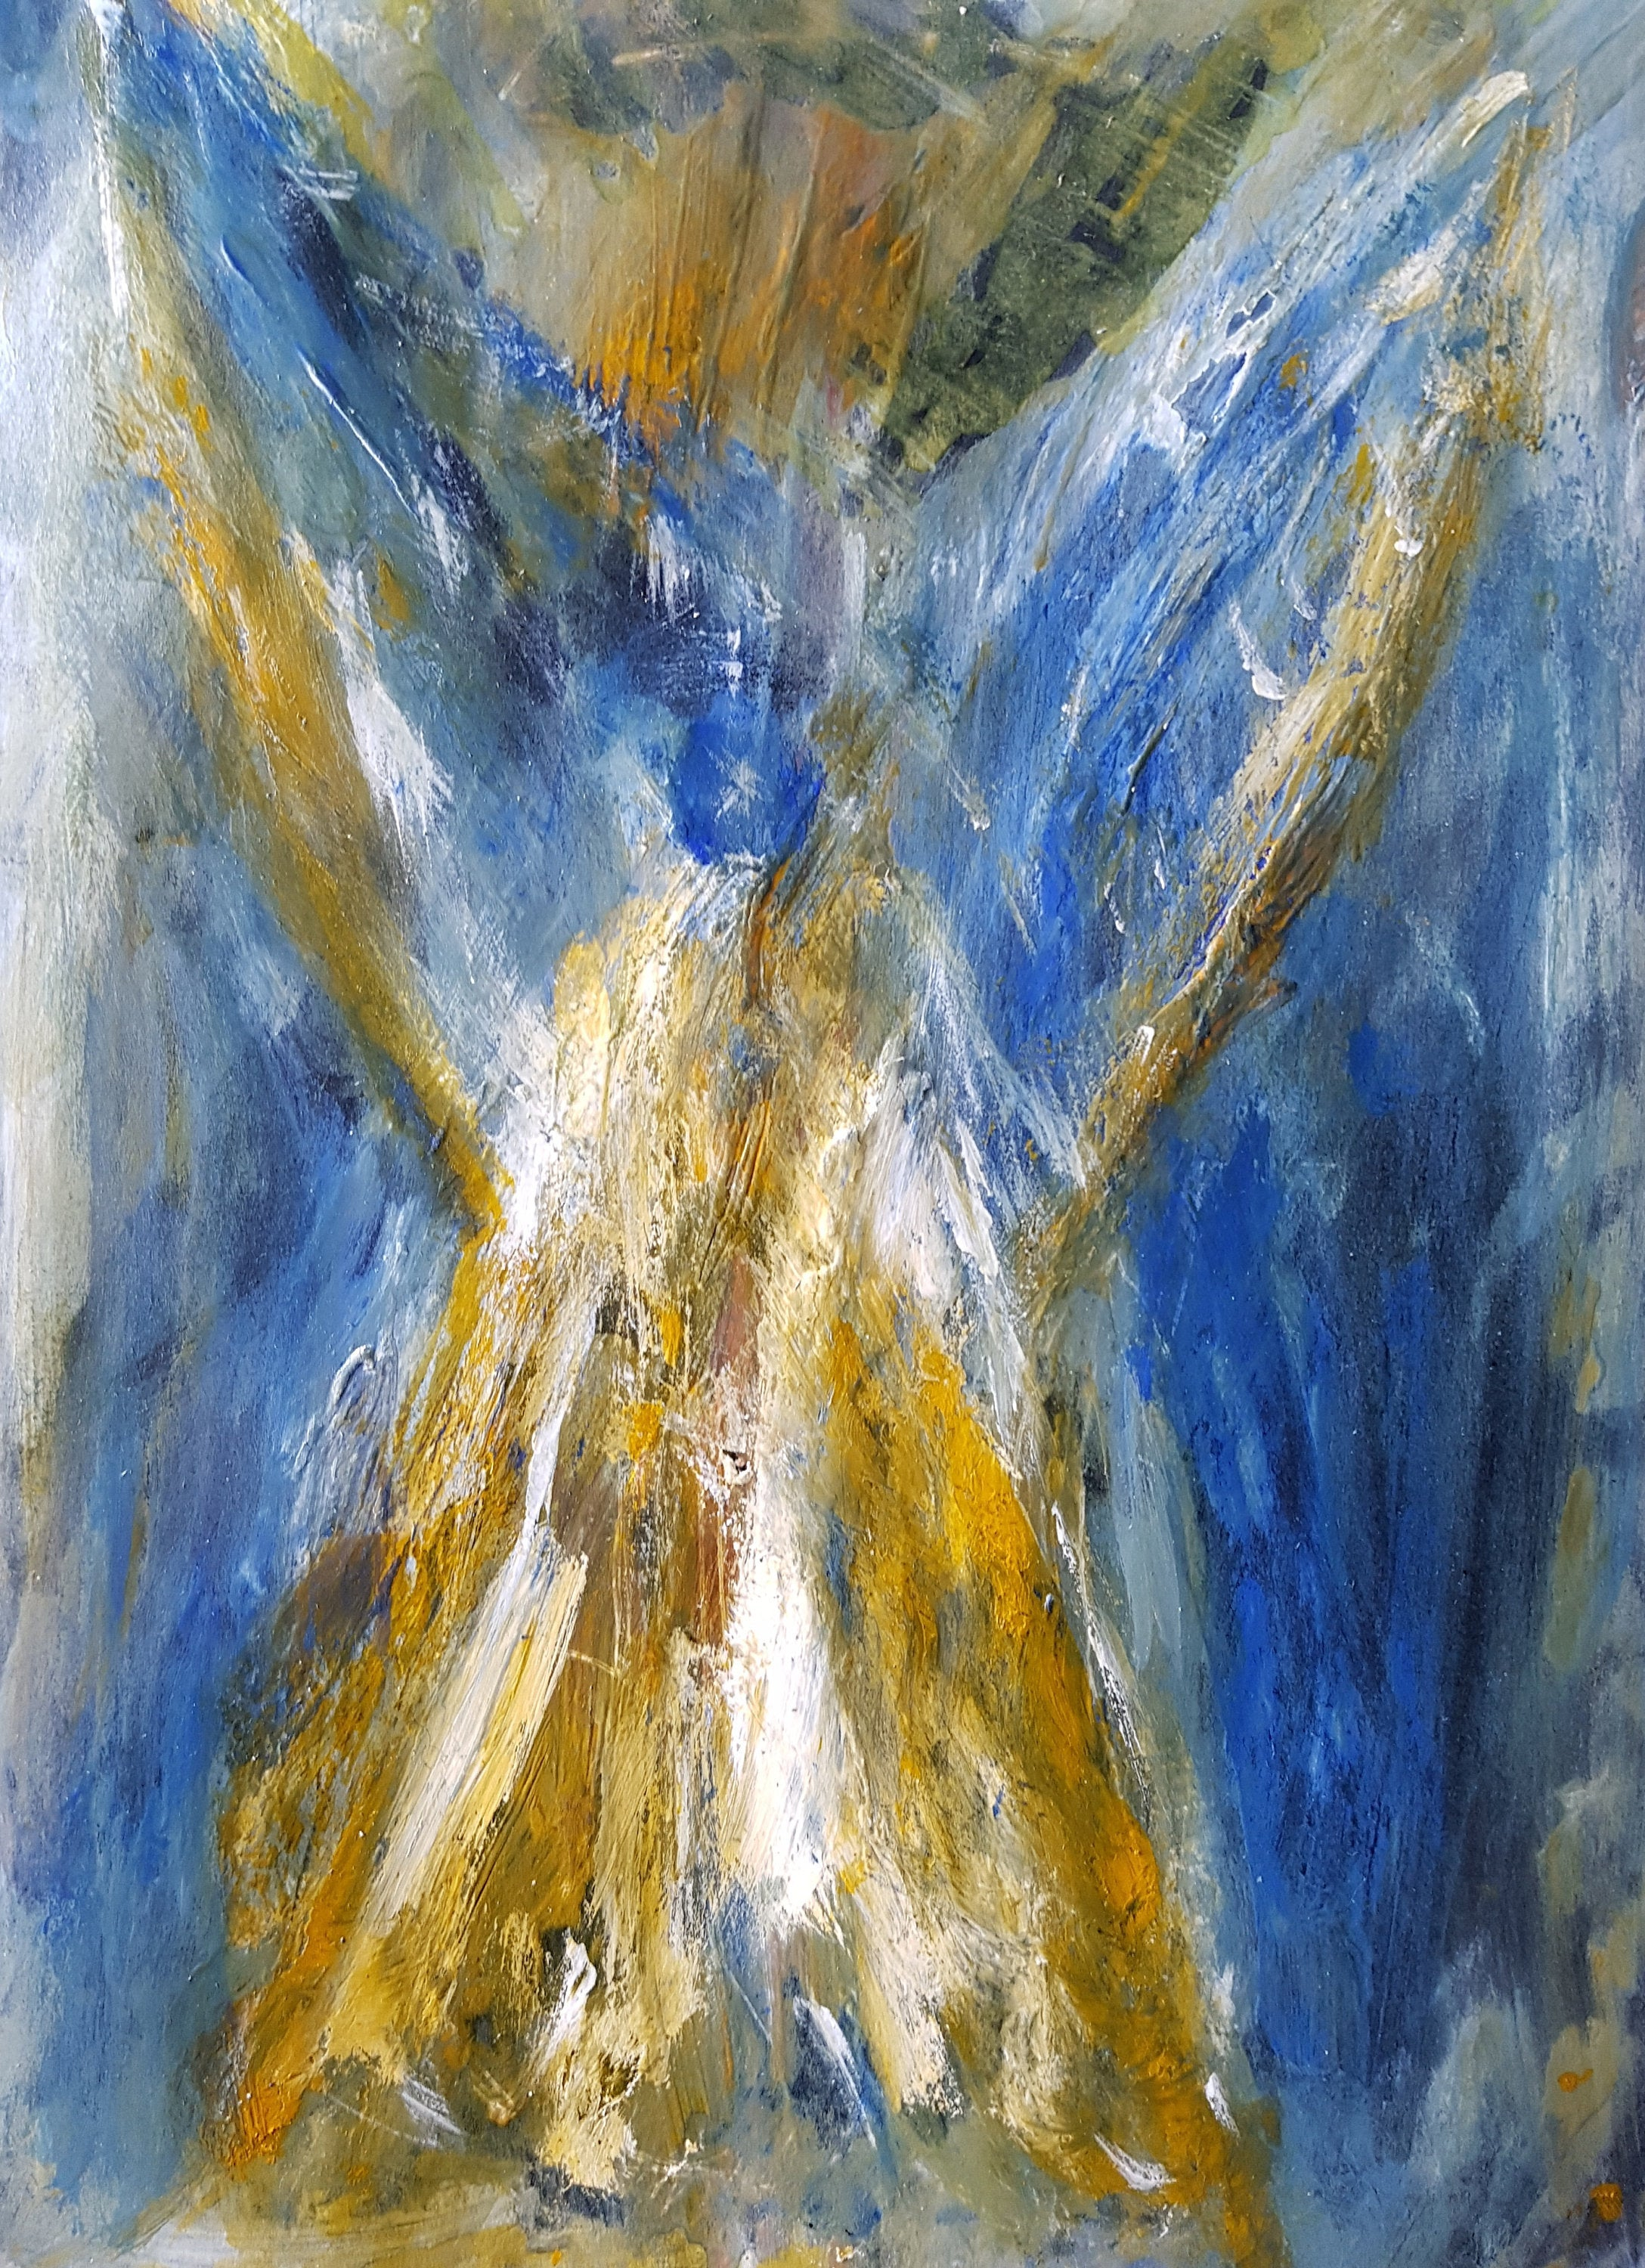 Archangel Ariel Abstract Watercolor Painting